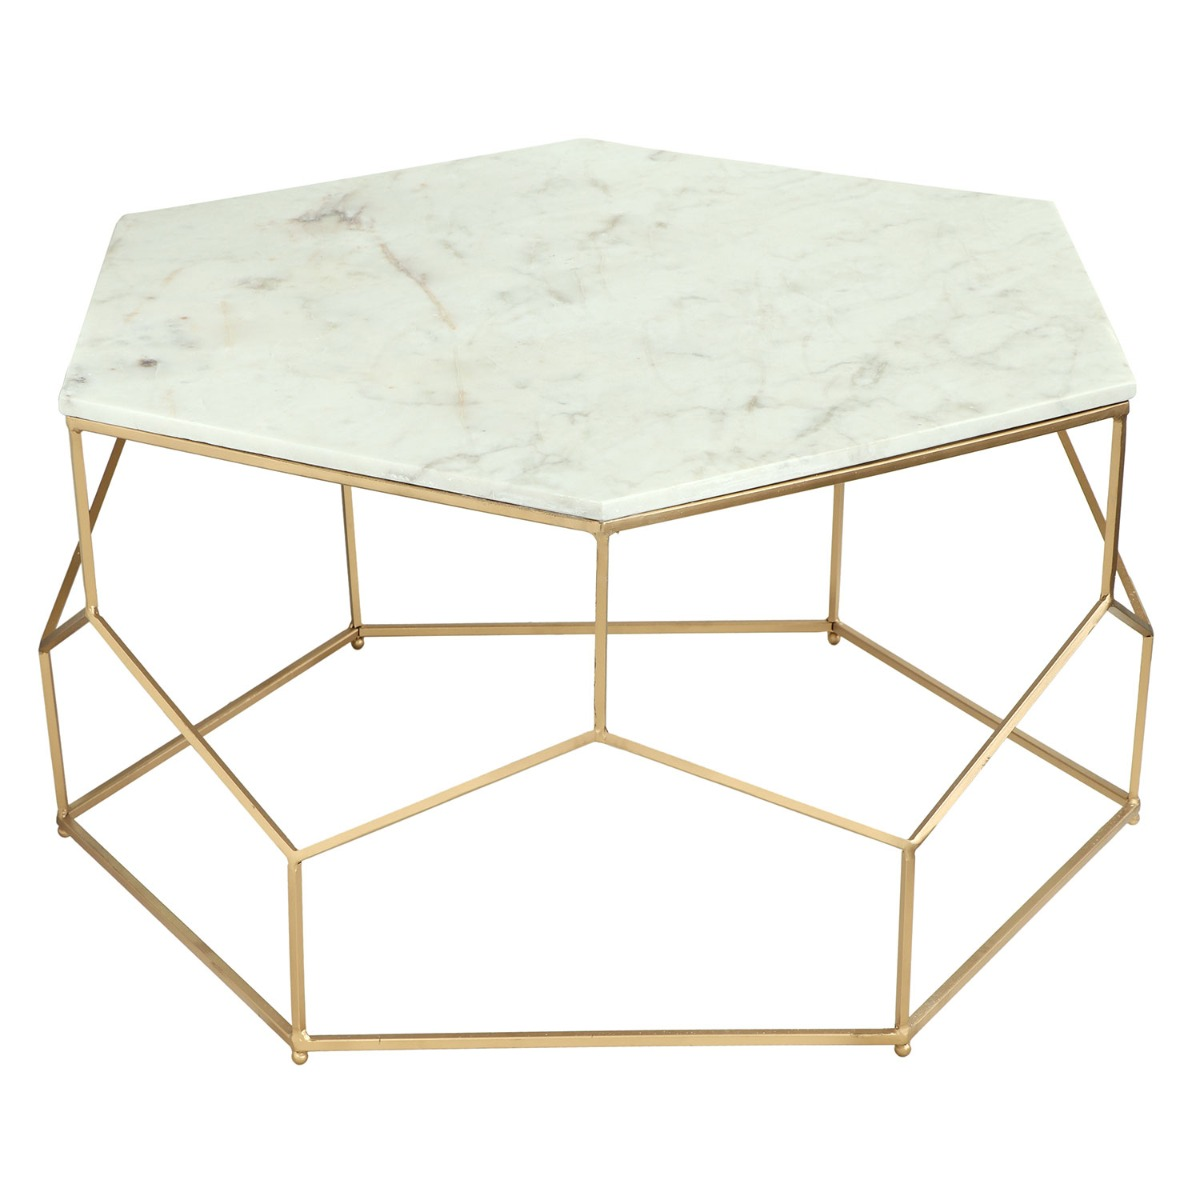 Table basse Oracle Marbre et pieds Or